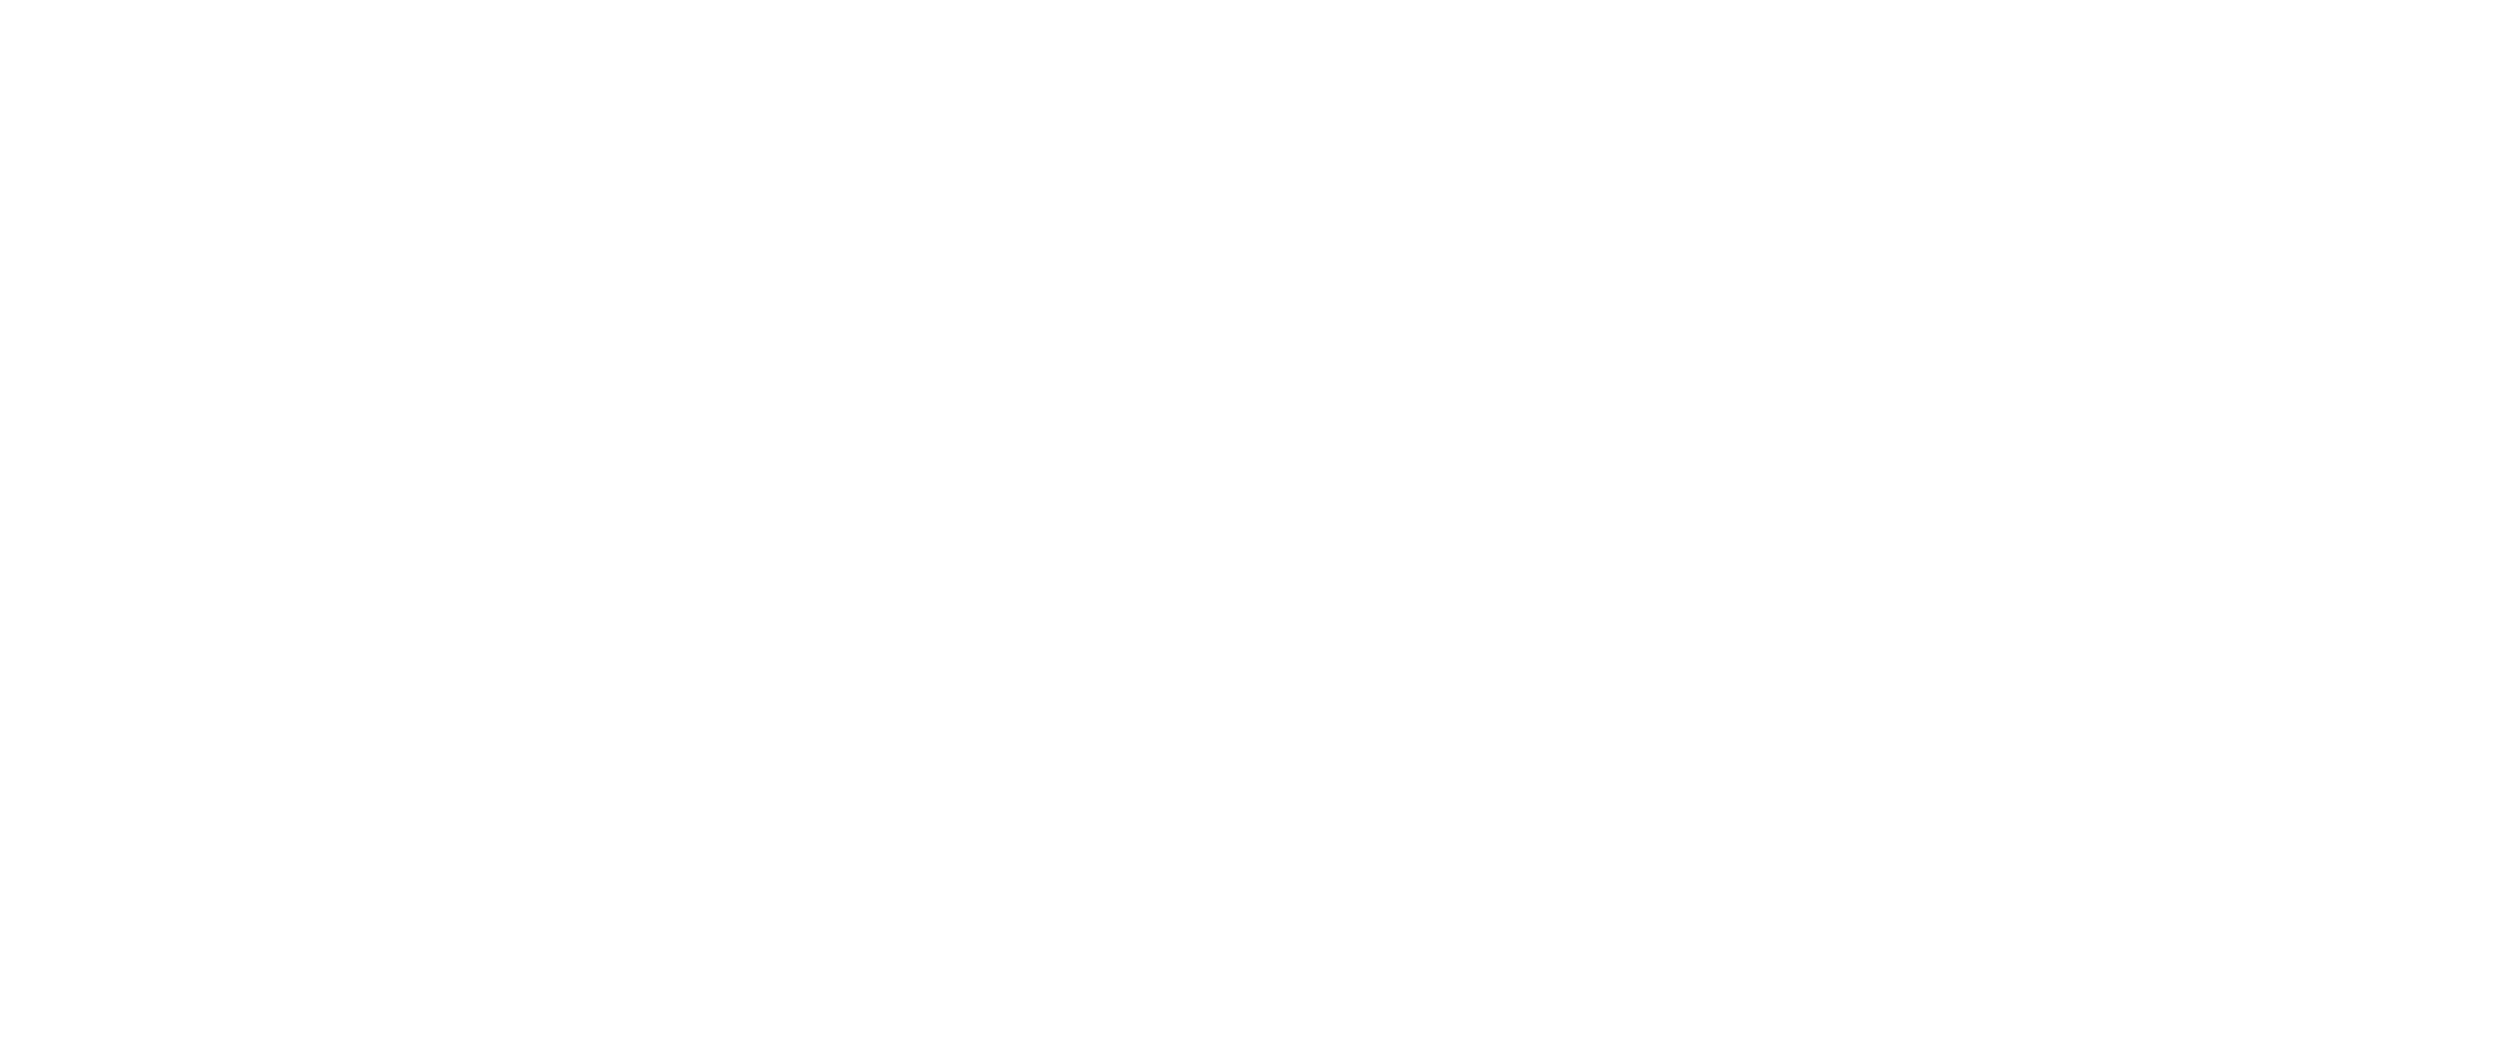 Black Diamon Logo White (2).png